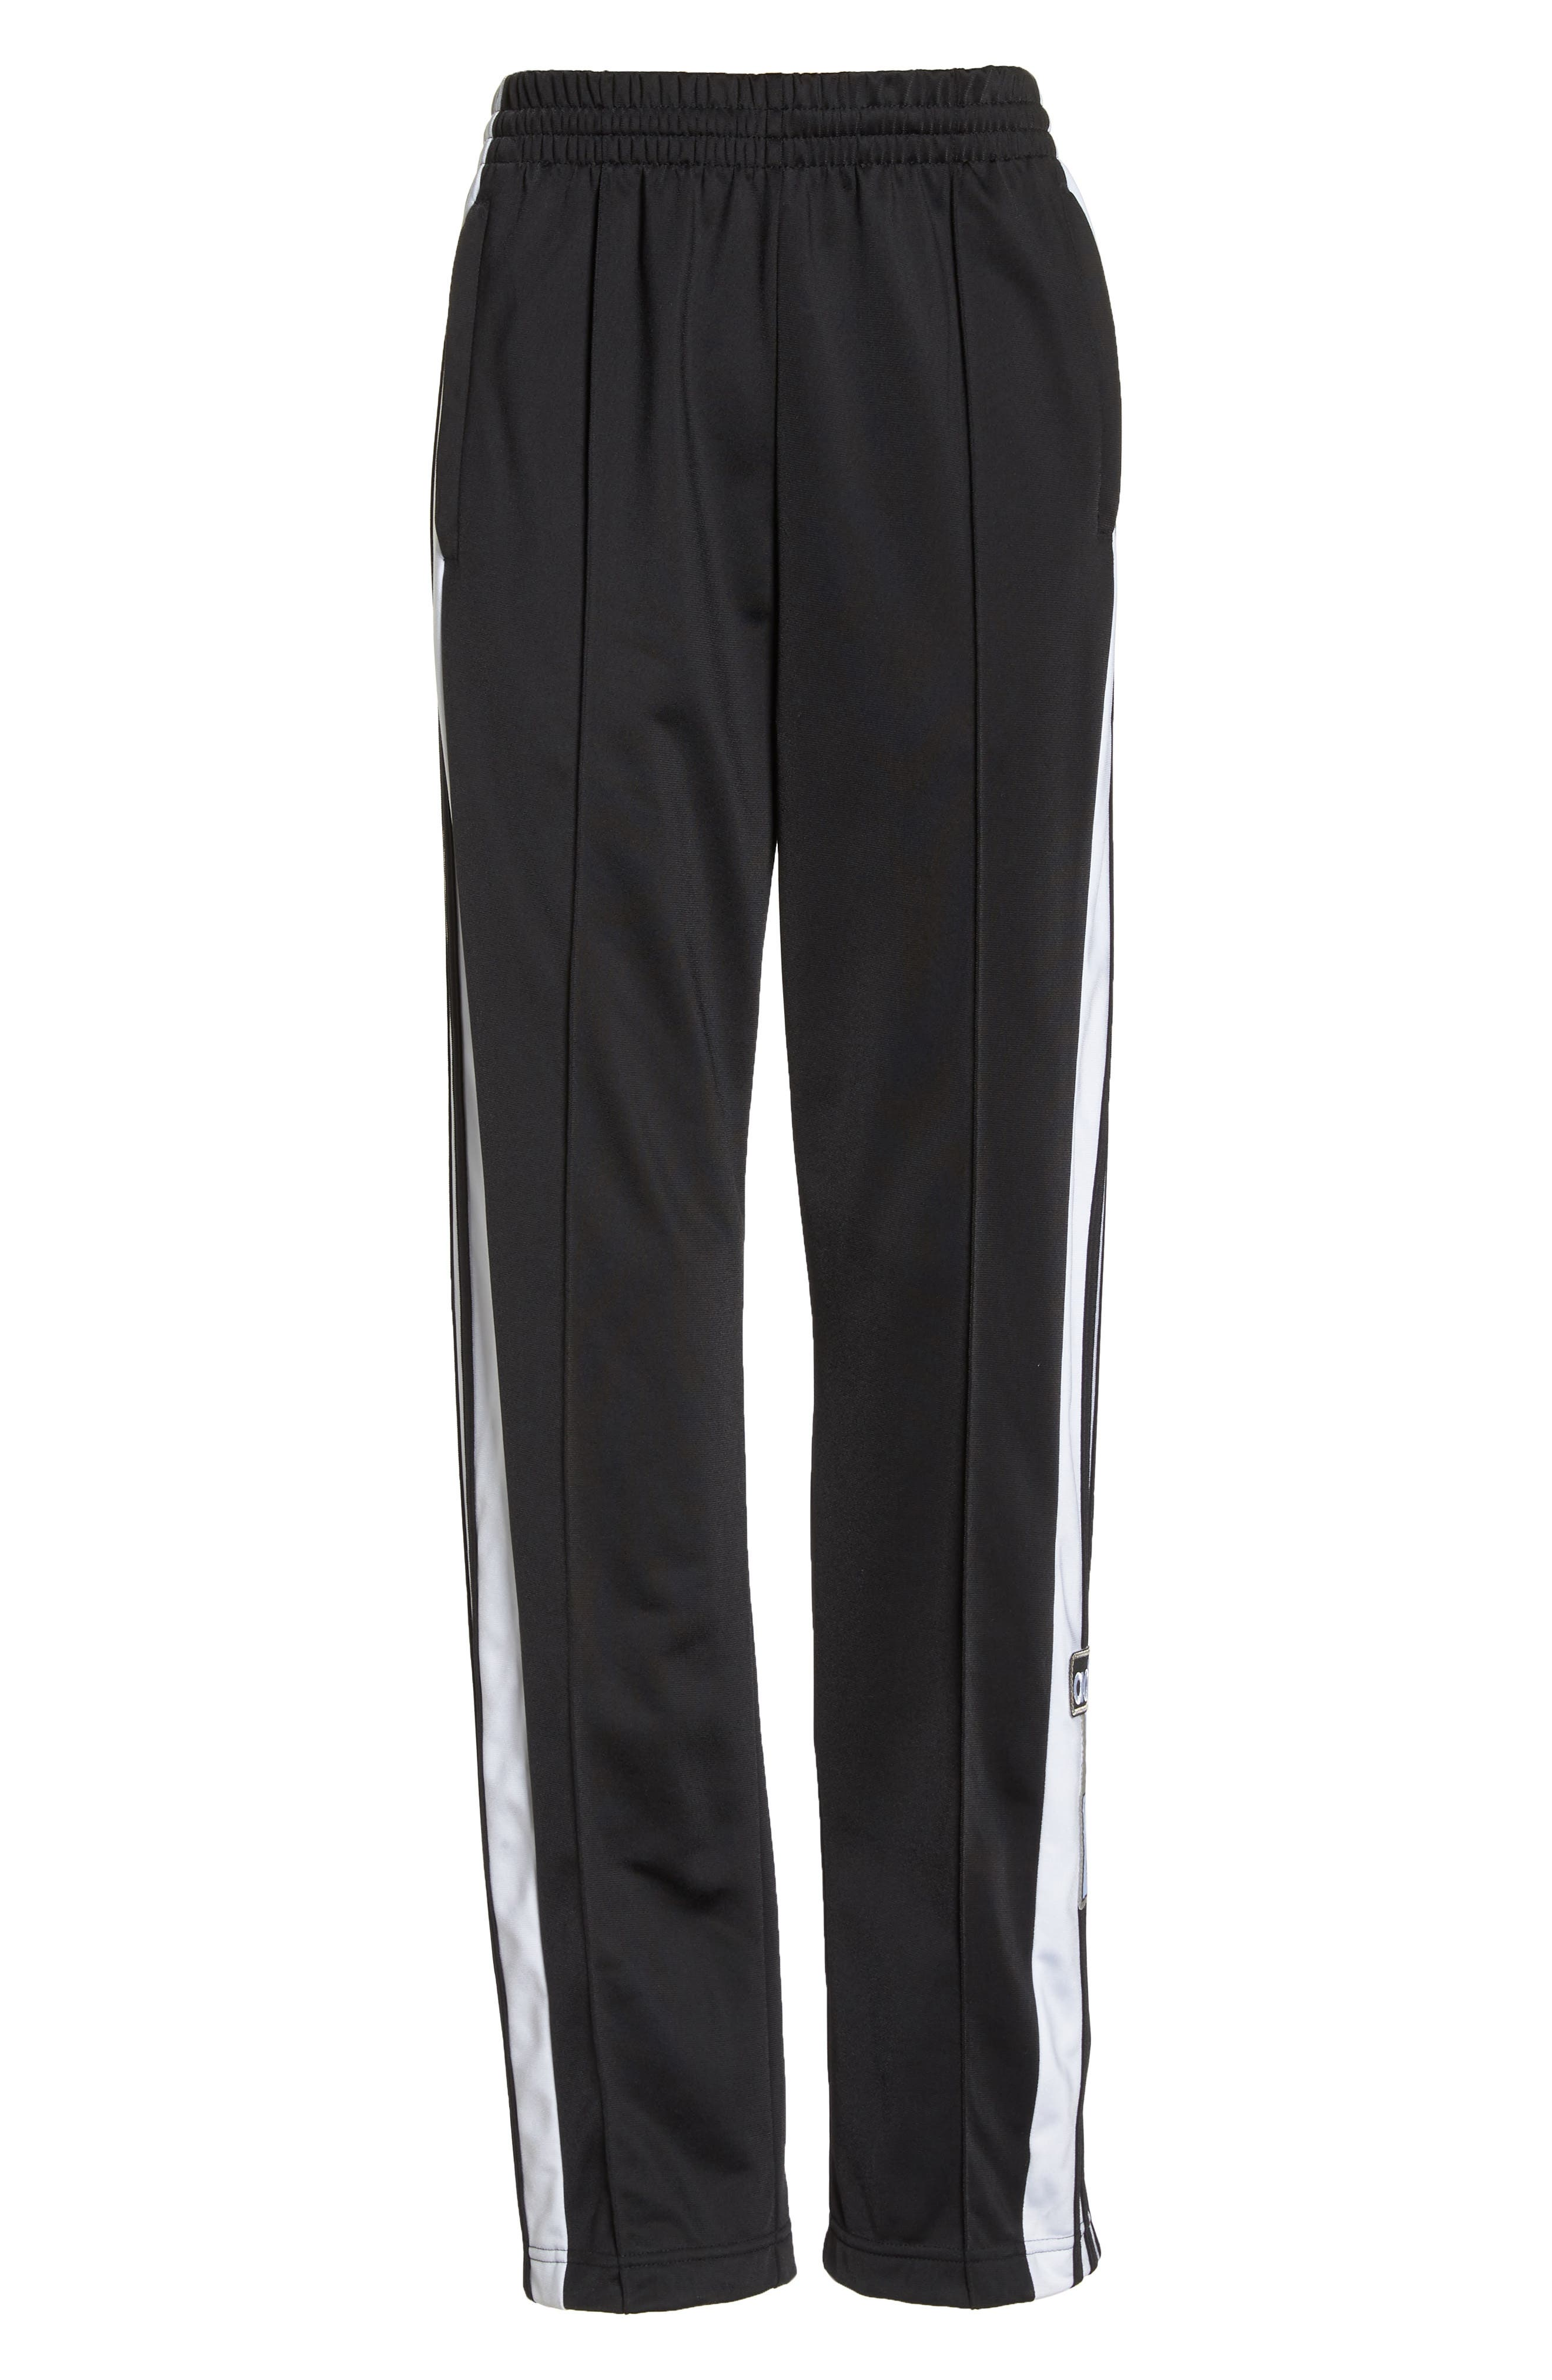 Originals Adibreak Tearaway Track Pants,                         Main,                         color, Black/ Carbon